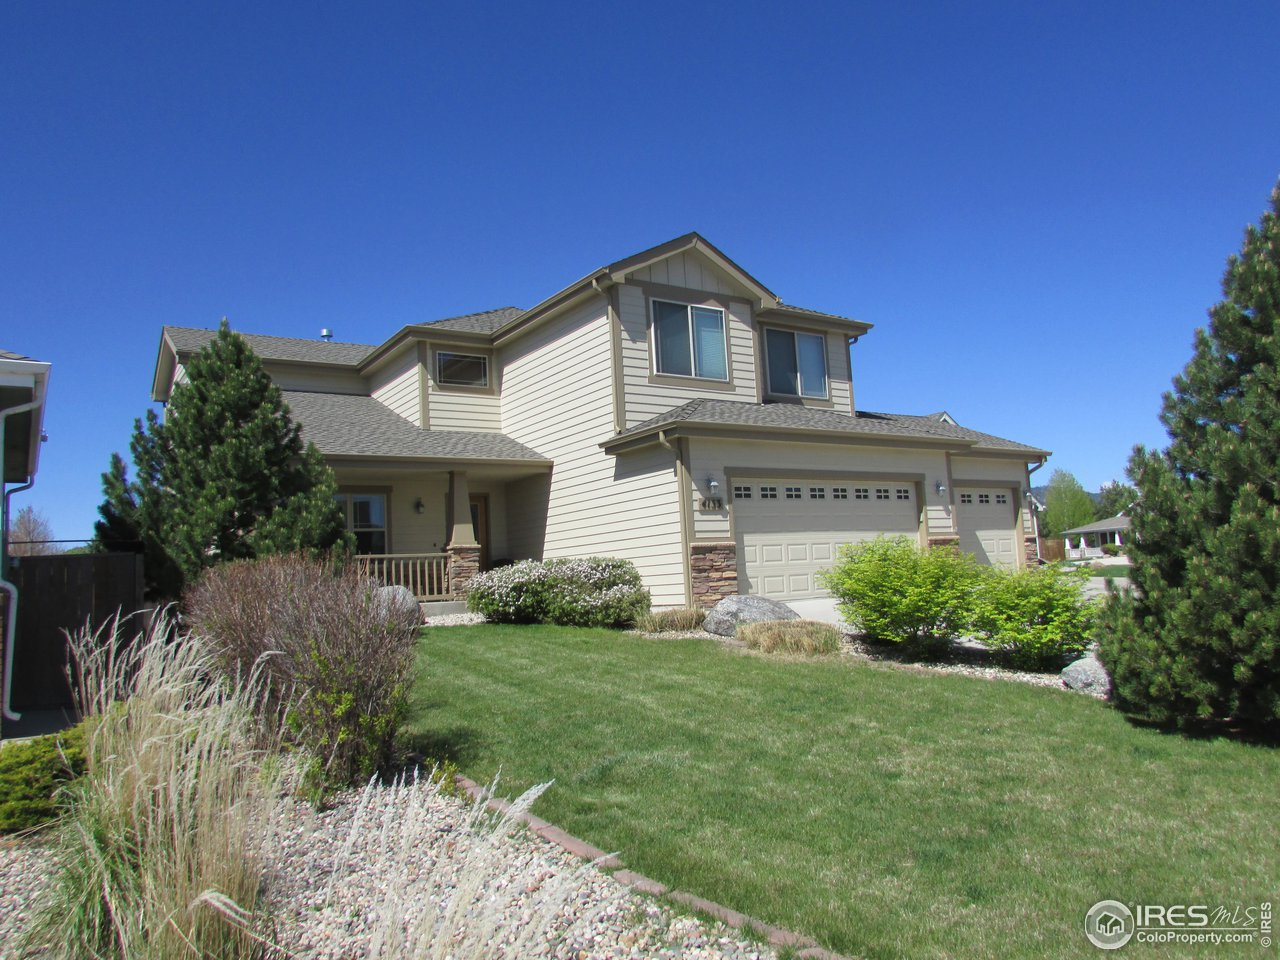 4133 Center Gate Ct, Fort Collins CO 80526